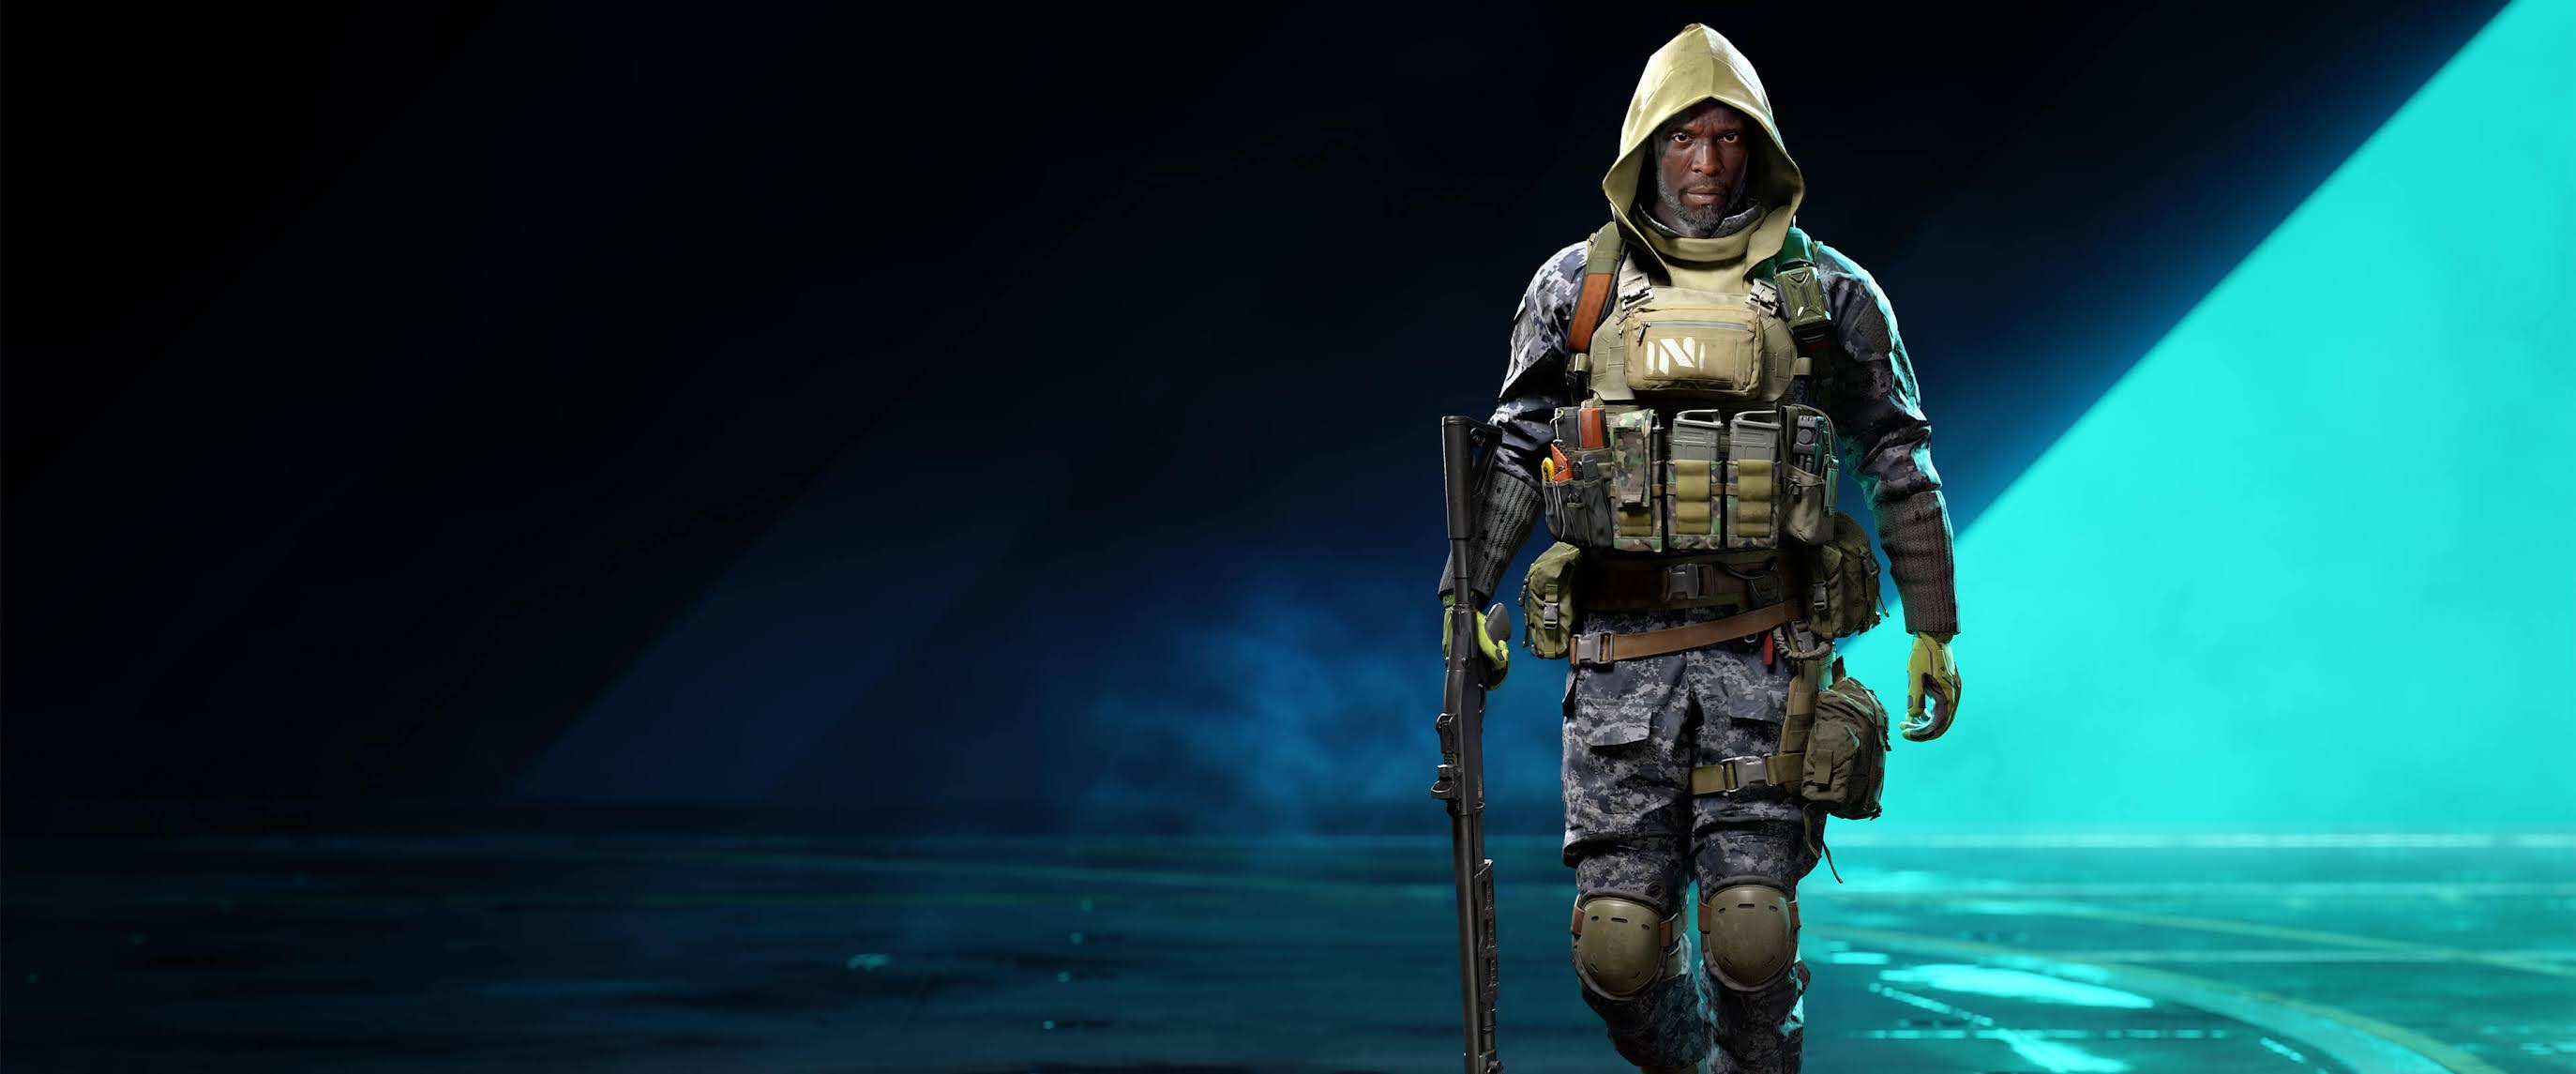 All known class specialists in Battlefield 2042 and what they can do